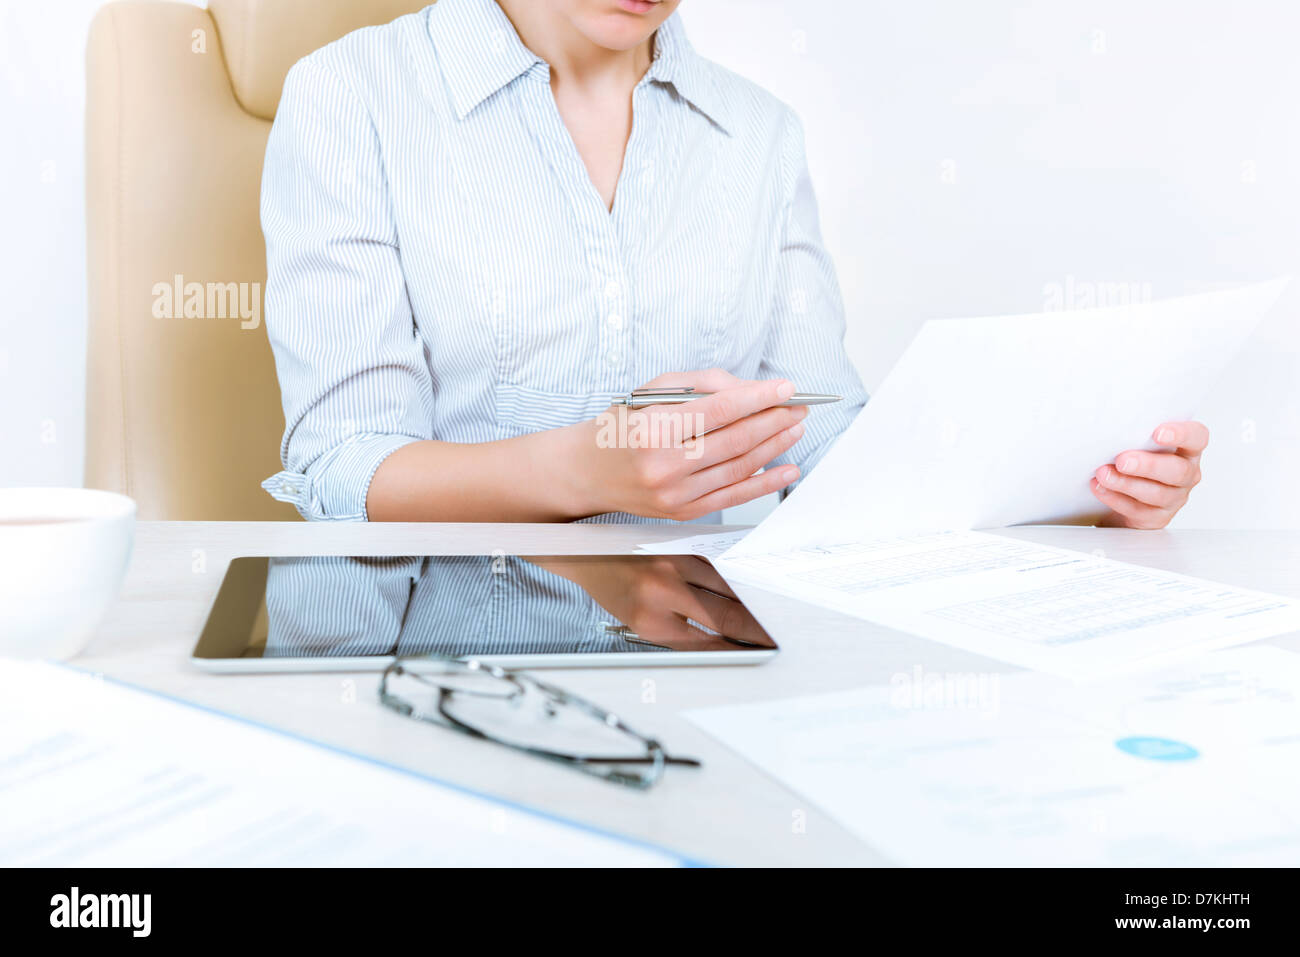 Busy businesswoman wearing in casual shirt sitting at desk and check documents in the office - Stock Image